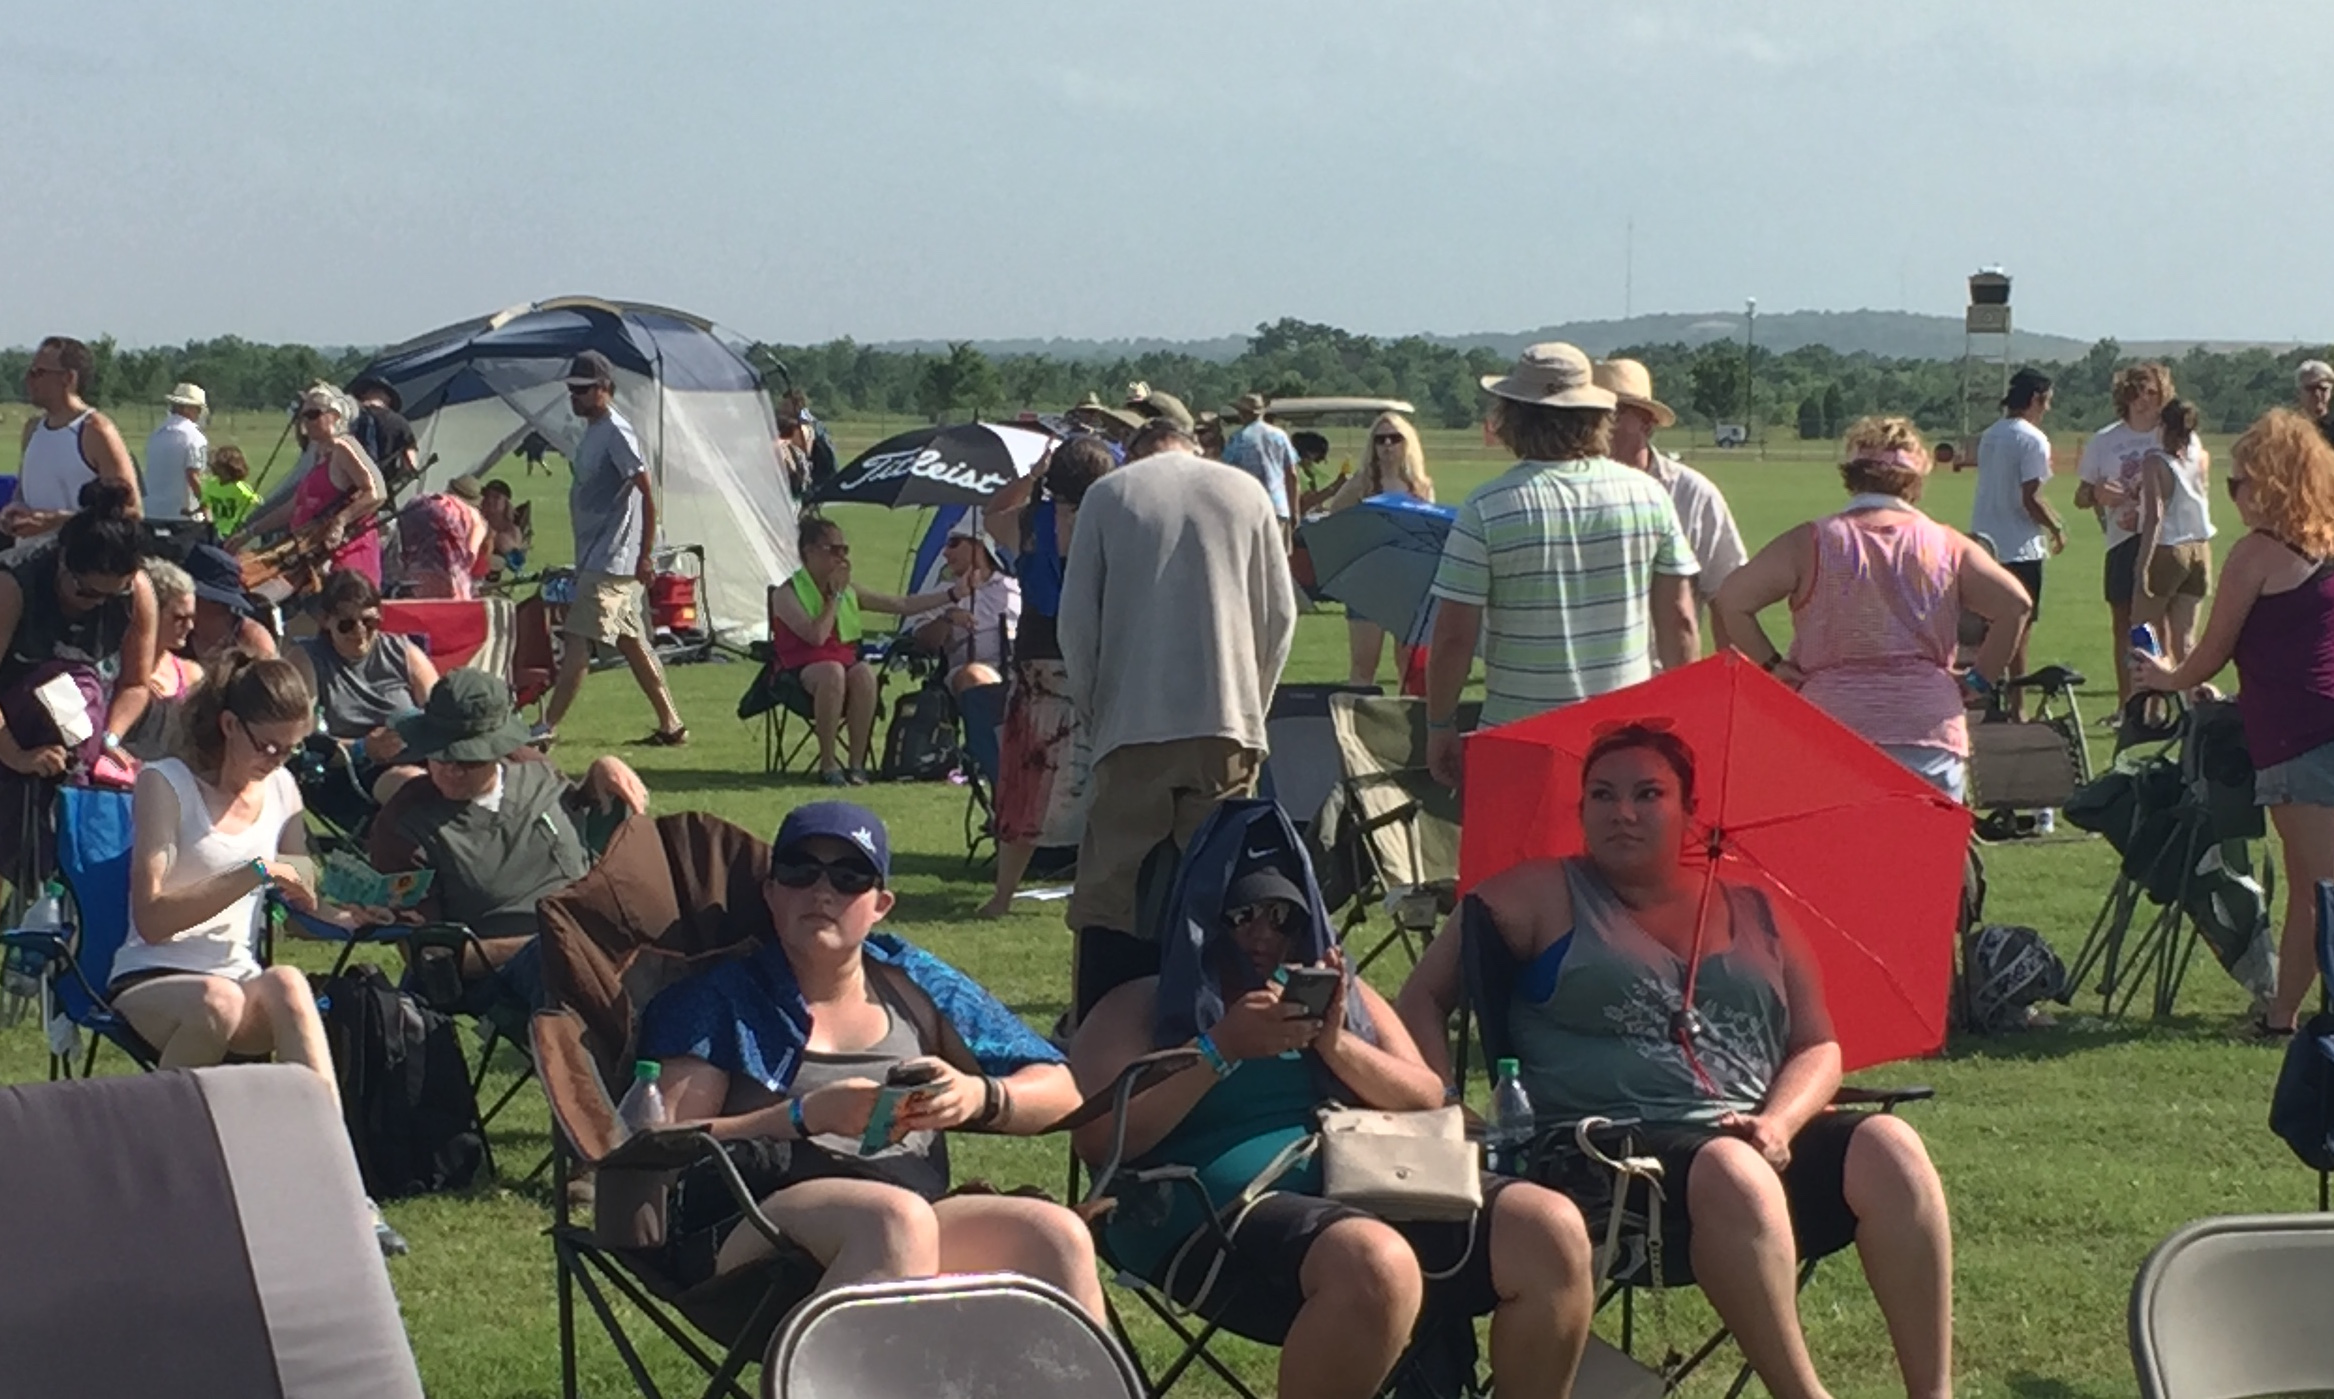 Music lovers brought chairs and umbrellas to catch all the tunes.